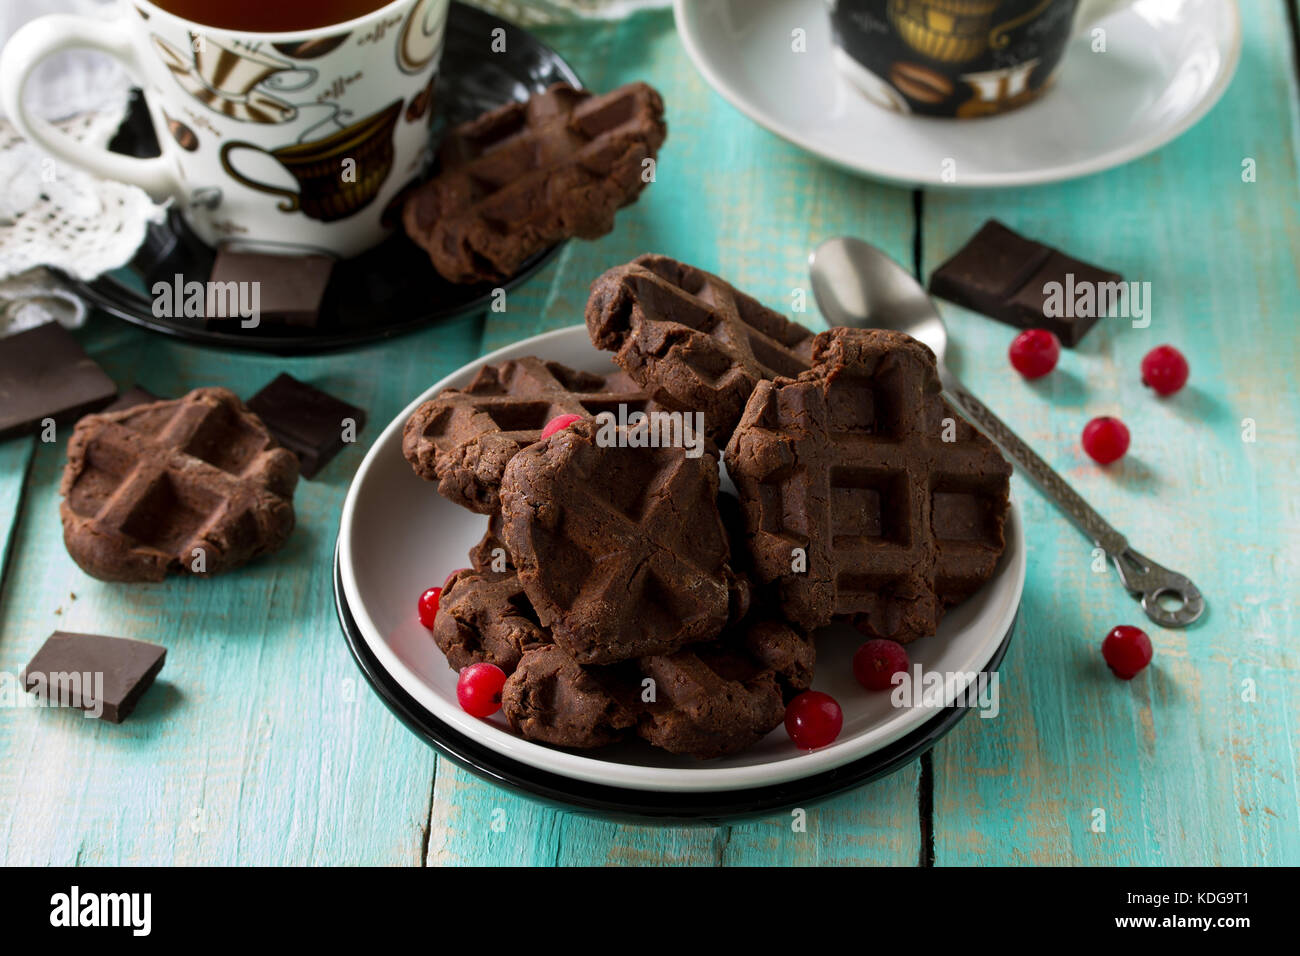 Homemade Belgian chocolate wafers with fresh berries and mint on a gray stone or slate background, Christmas background. - Stock Image